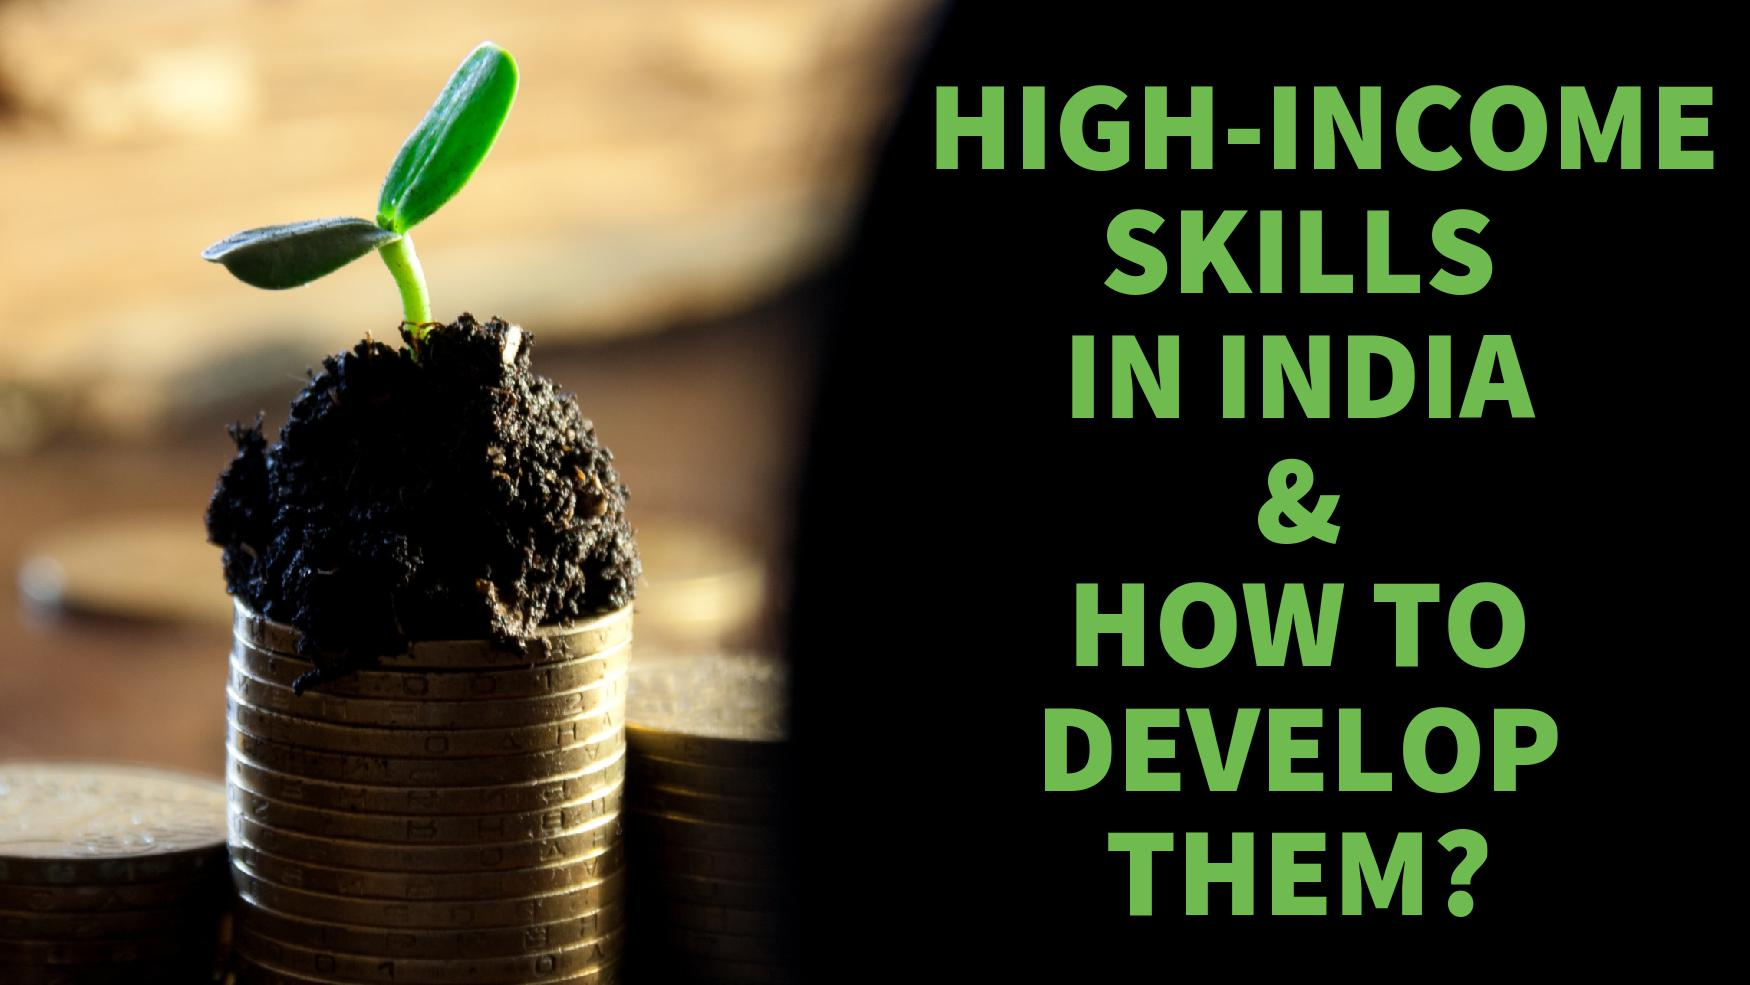 High-income skills in India